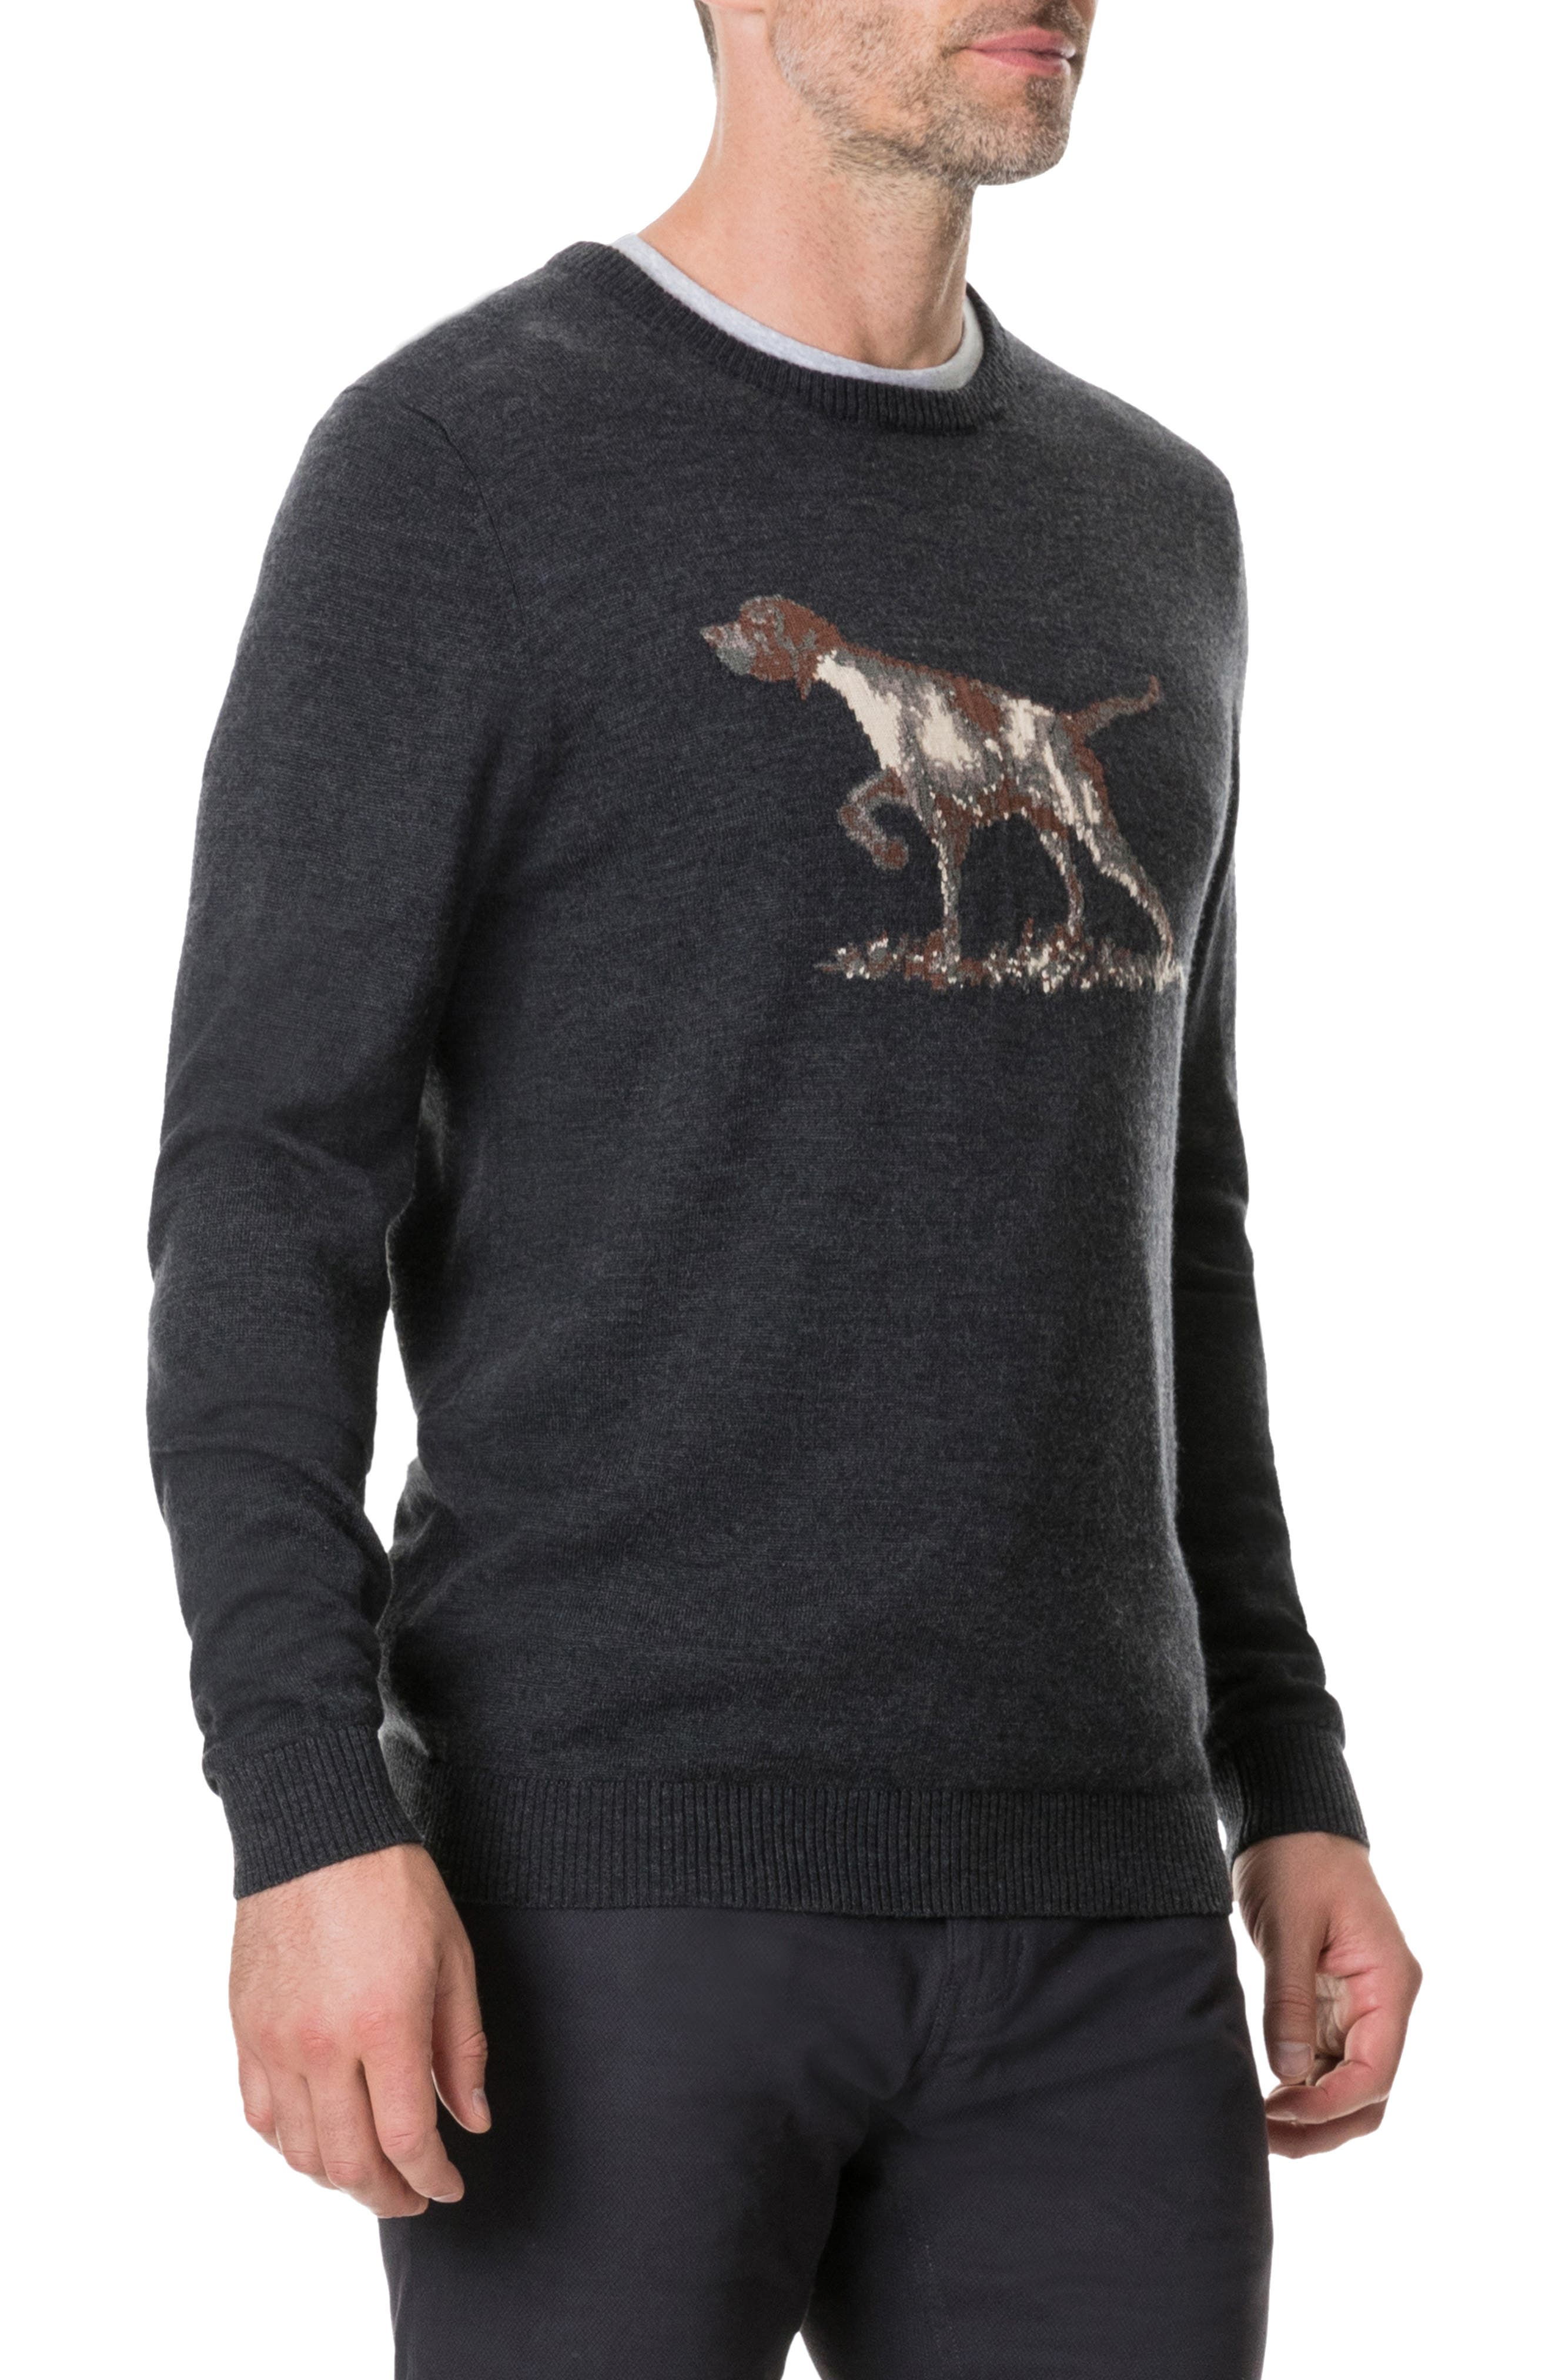 Calderwell Pointer Intarsia Knit Wool Sweater,                             Alternate thumbnail 3, color,                             CHARCOAL